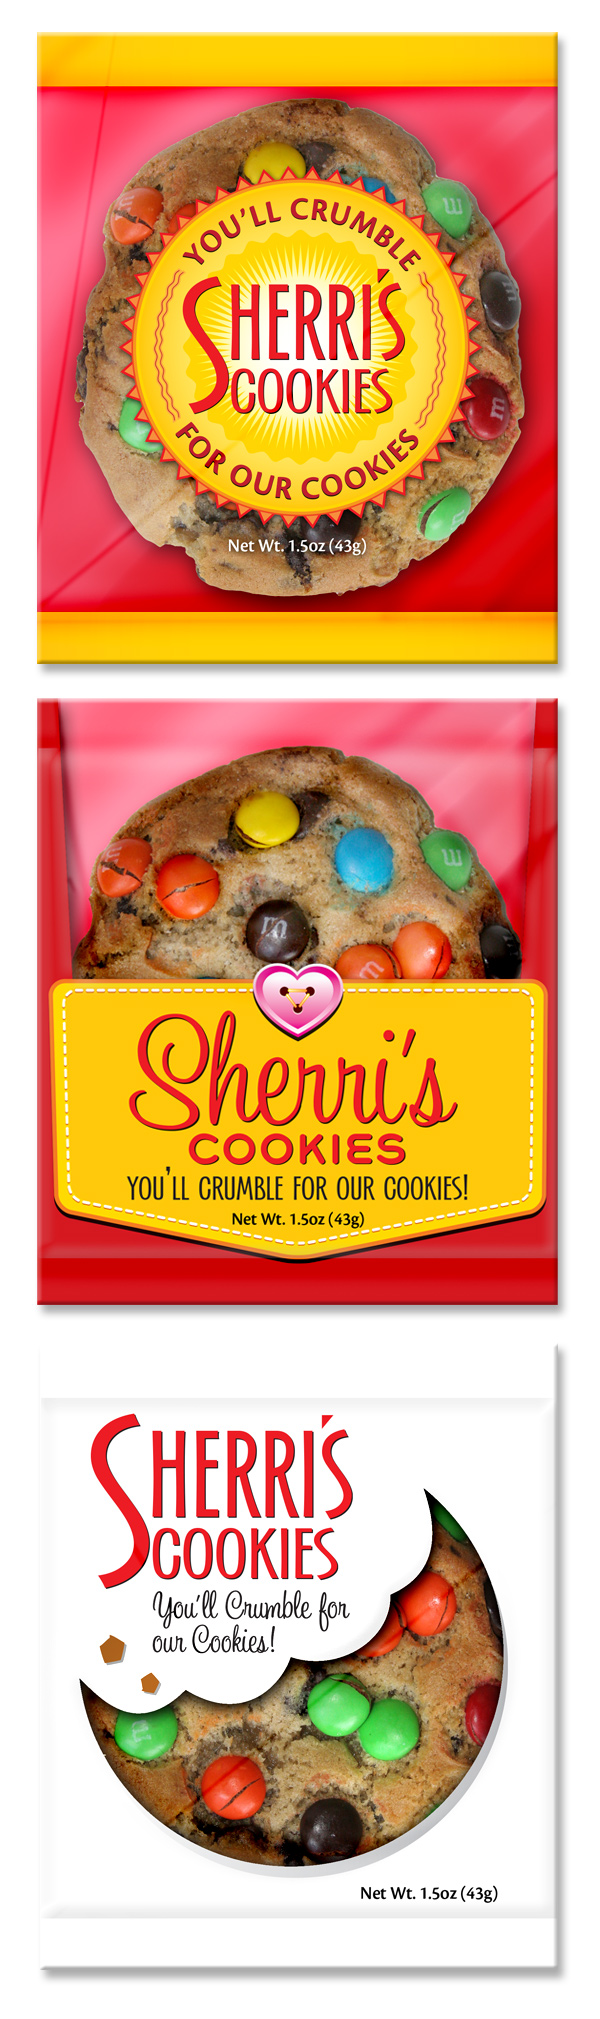 Three Sherris Cookies Package Wrapper Design Concepts